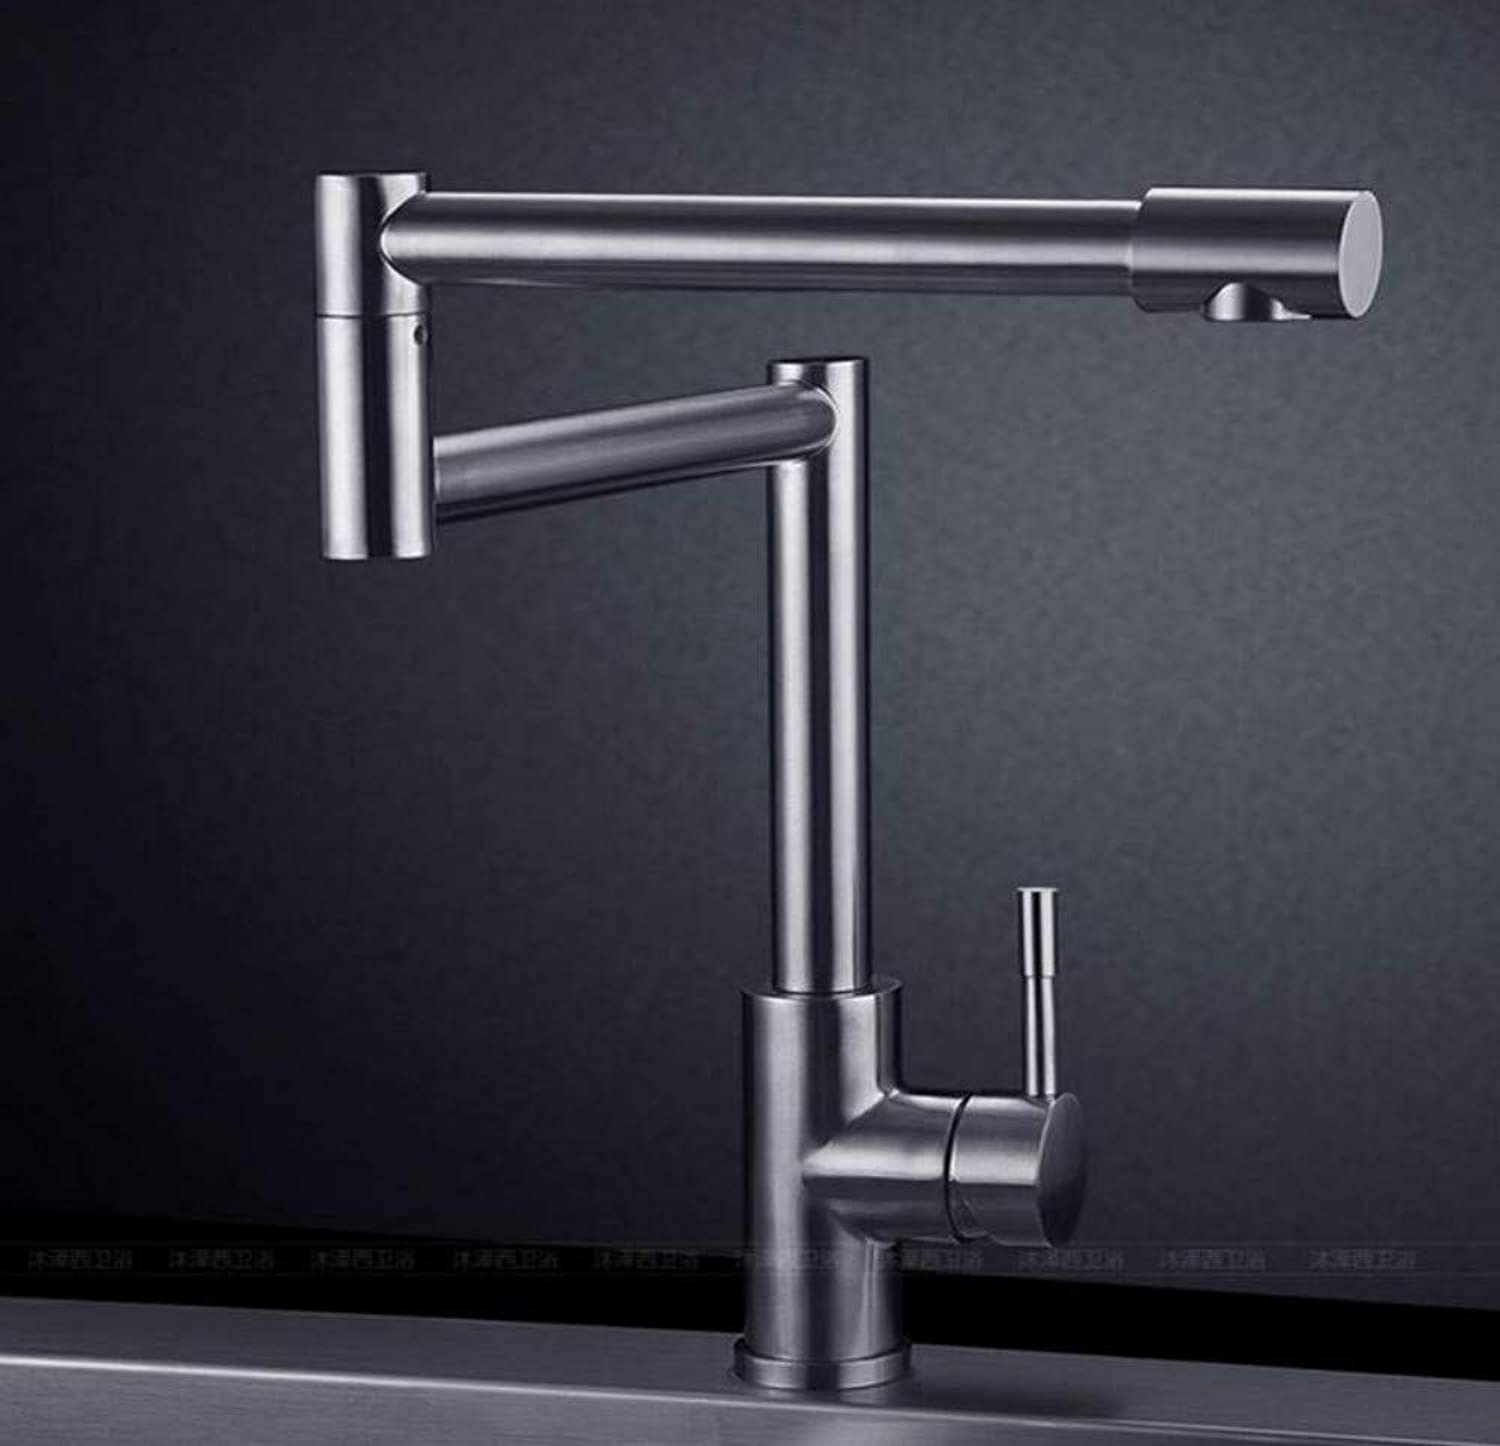 Copper Faucet Basin Faucet Hot and Cold Kitchen Sink Sink Sink Sink Collapsible Universal redary Faucet